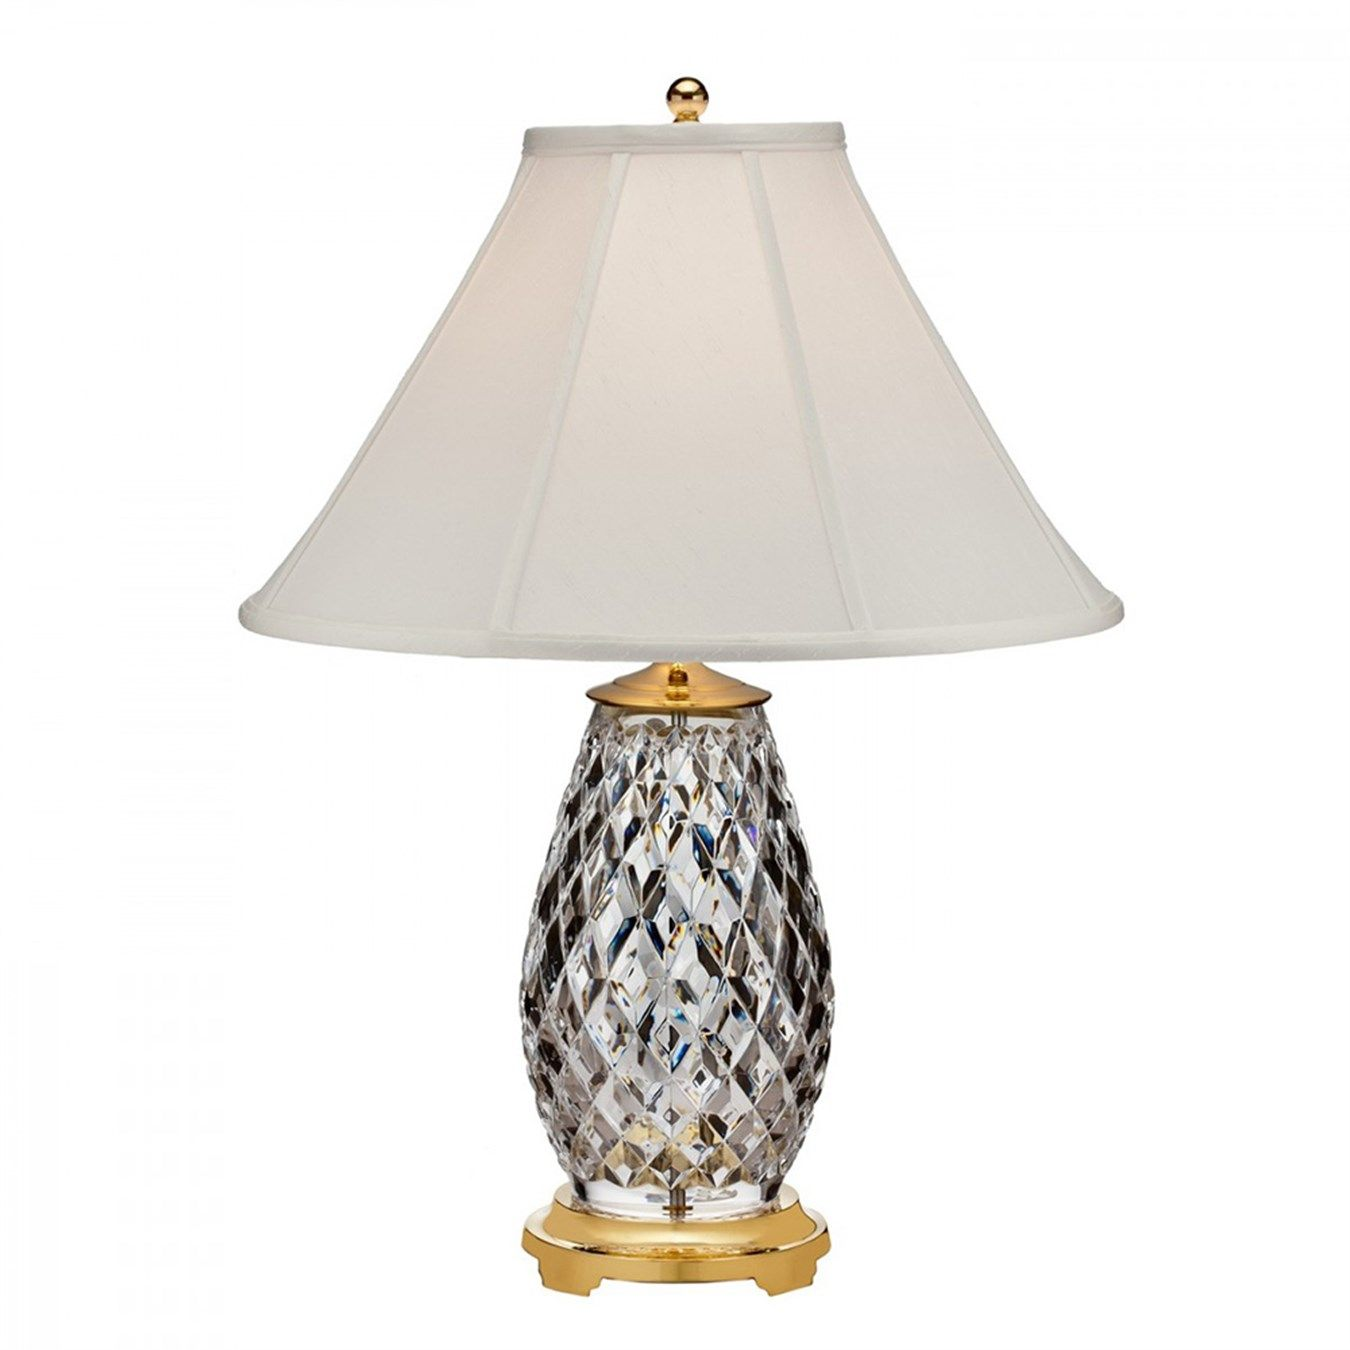 Waterford Diama Table Lamp In 2020 Table Lamp Lamp Crystal Table Lamps